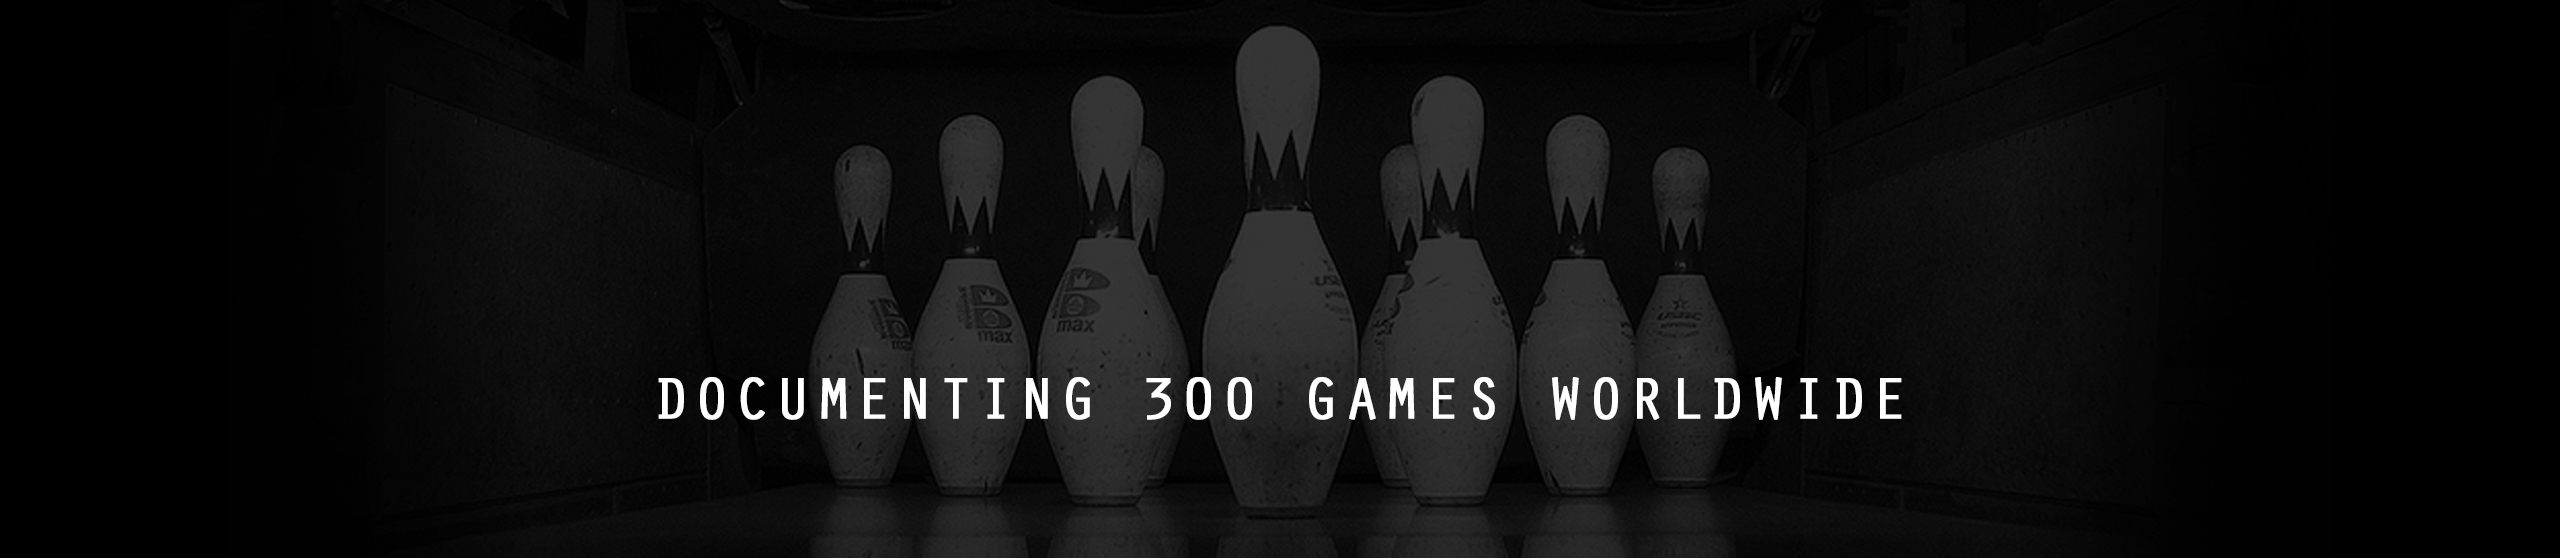 Documenting-300-Games-Worldwide-Header